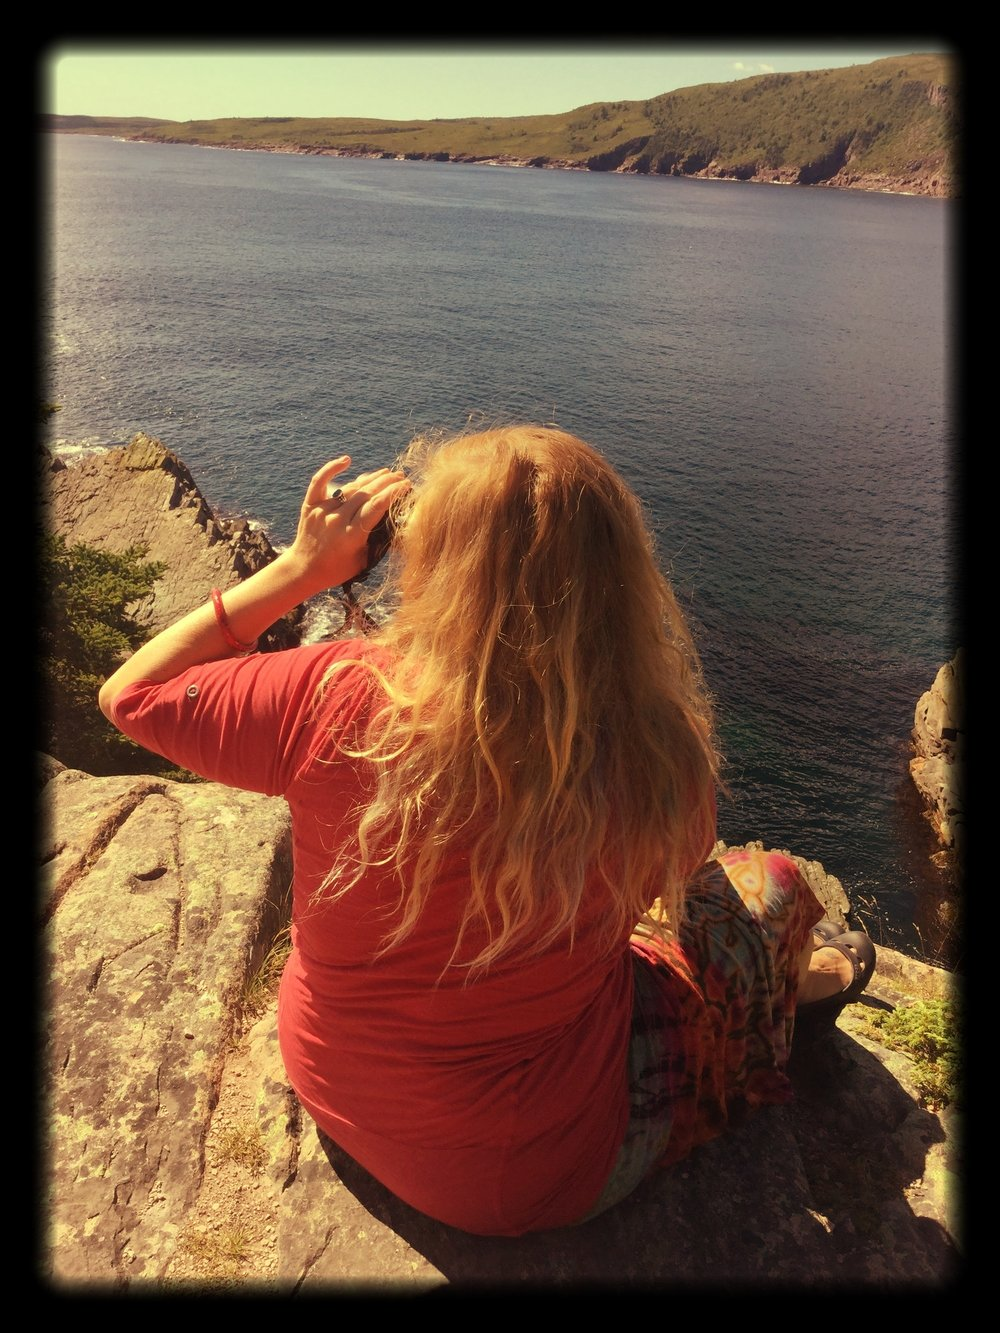 Lindsay_on_a_rock_on_The_Rock_out_to_Sea